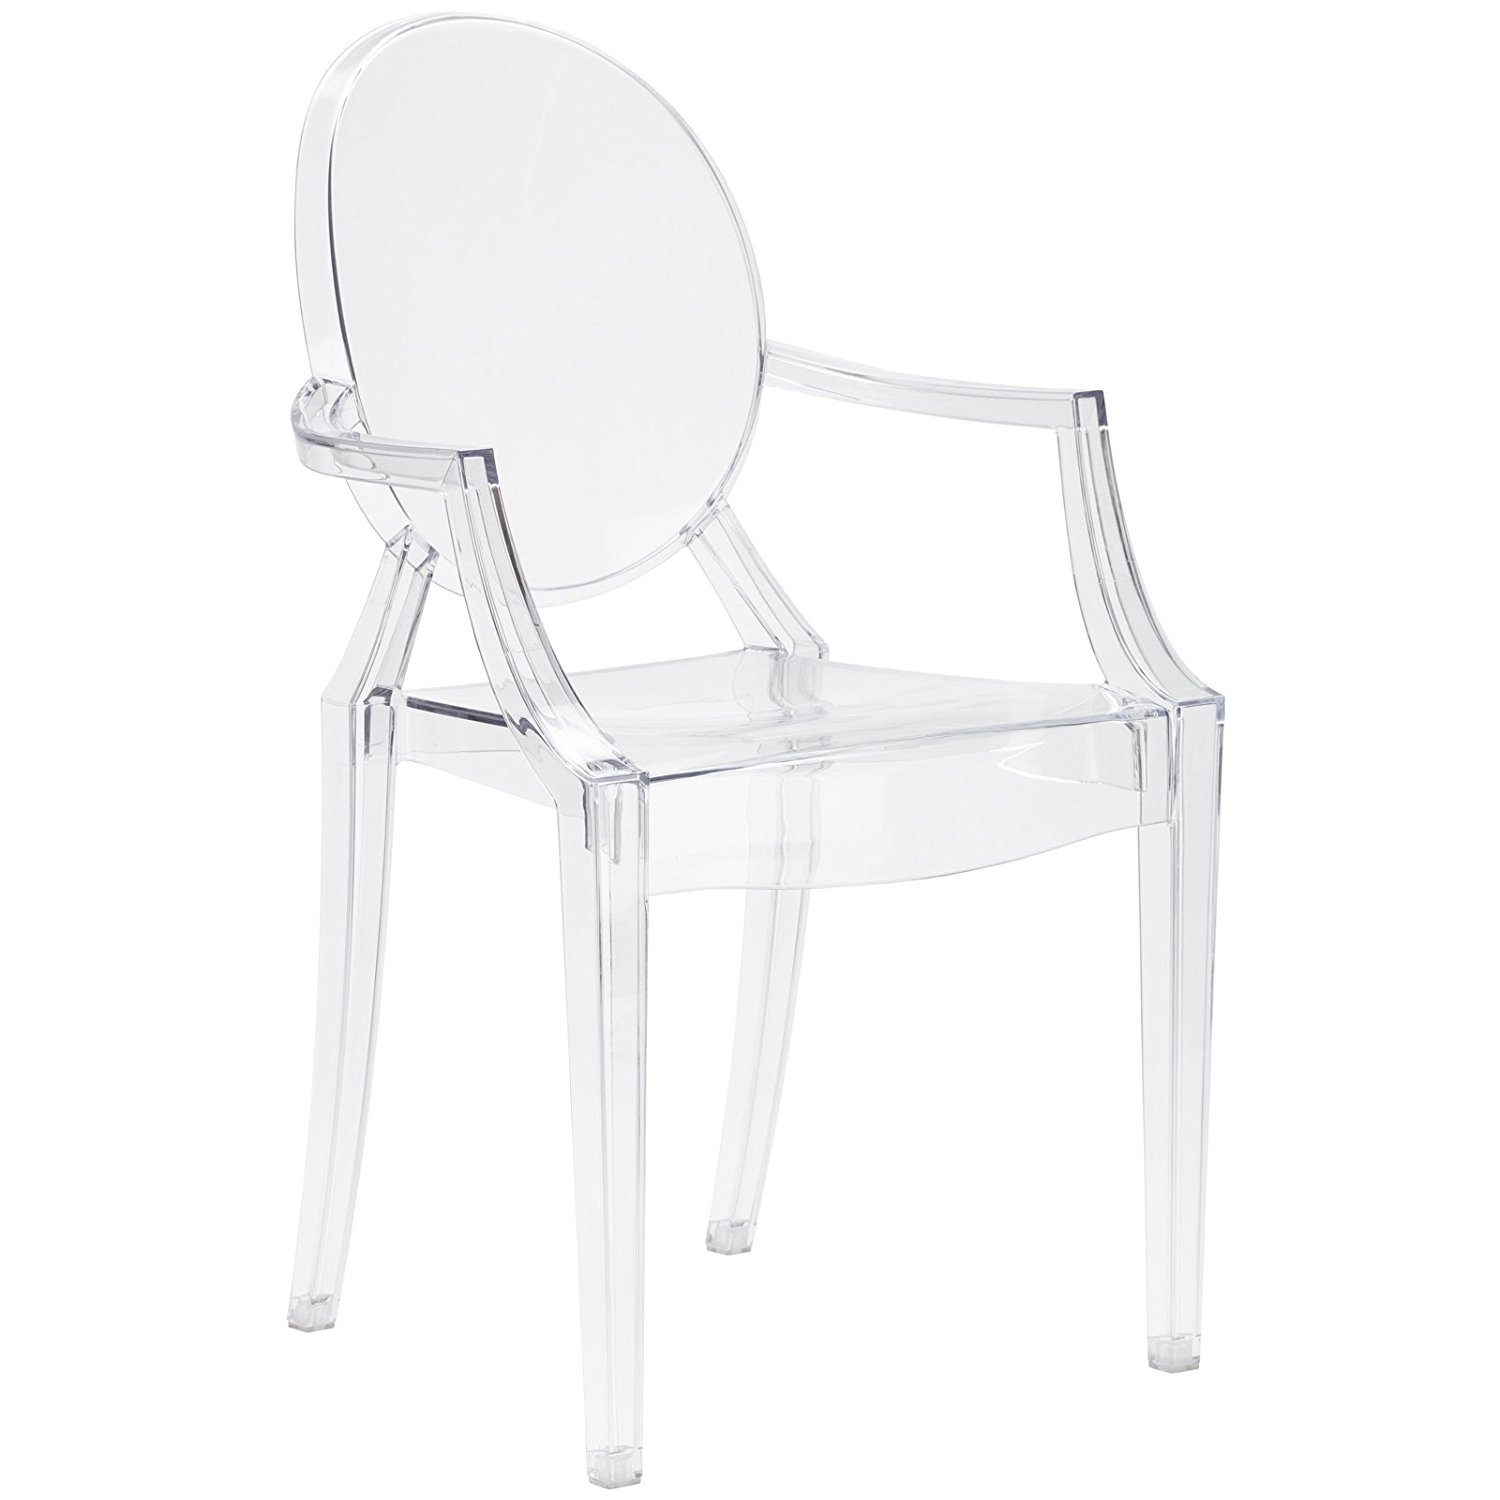 Top 10 Best Plastic Chairs in 2017